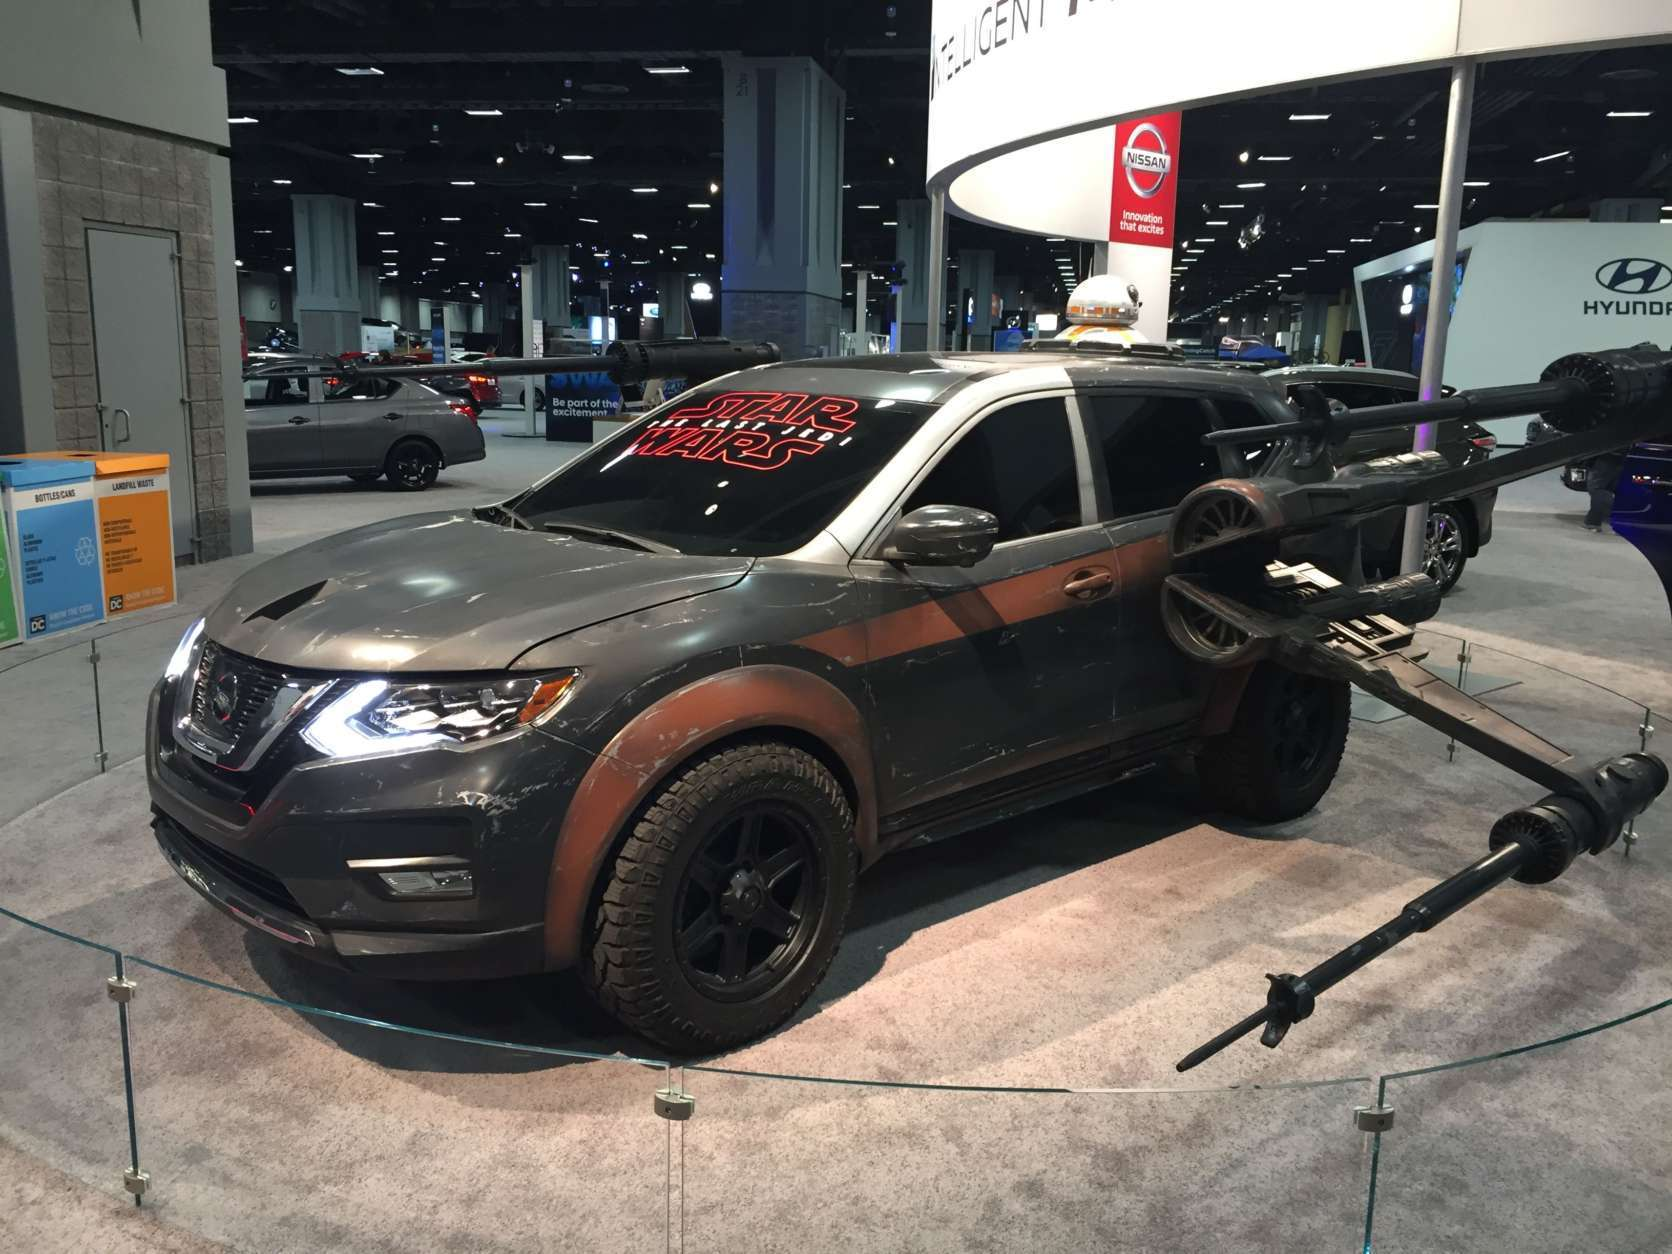 A Nissan Rogue tricked out in a 'Star Wars' motif at the 2018 Washington Auto Show. (WTOP/John Domen)